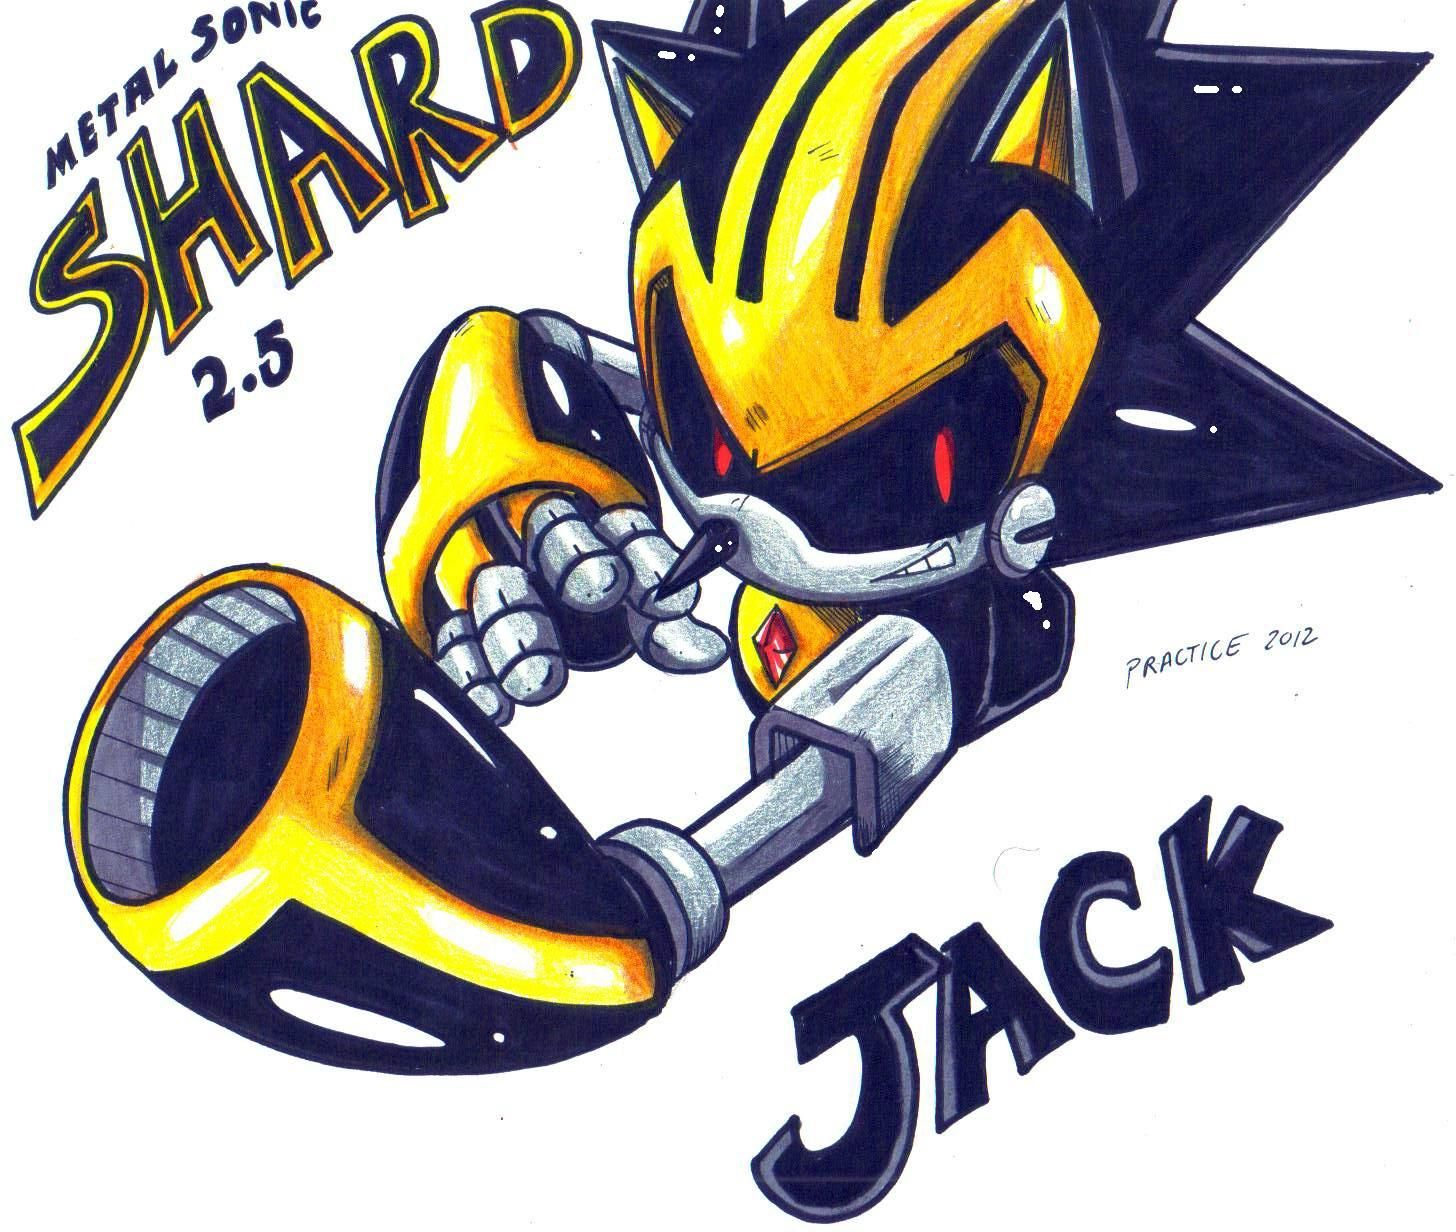 Metal Sonic 2.5: Shard. Codename: Jack. The epitome of sonic awesomeness.